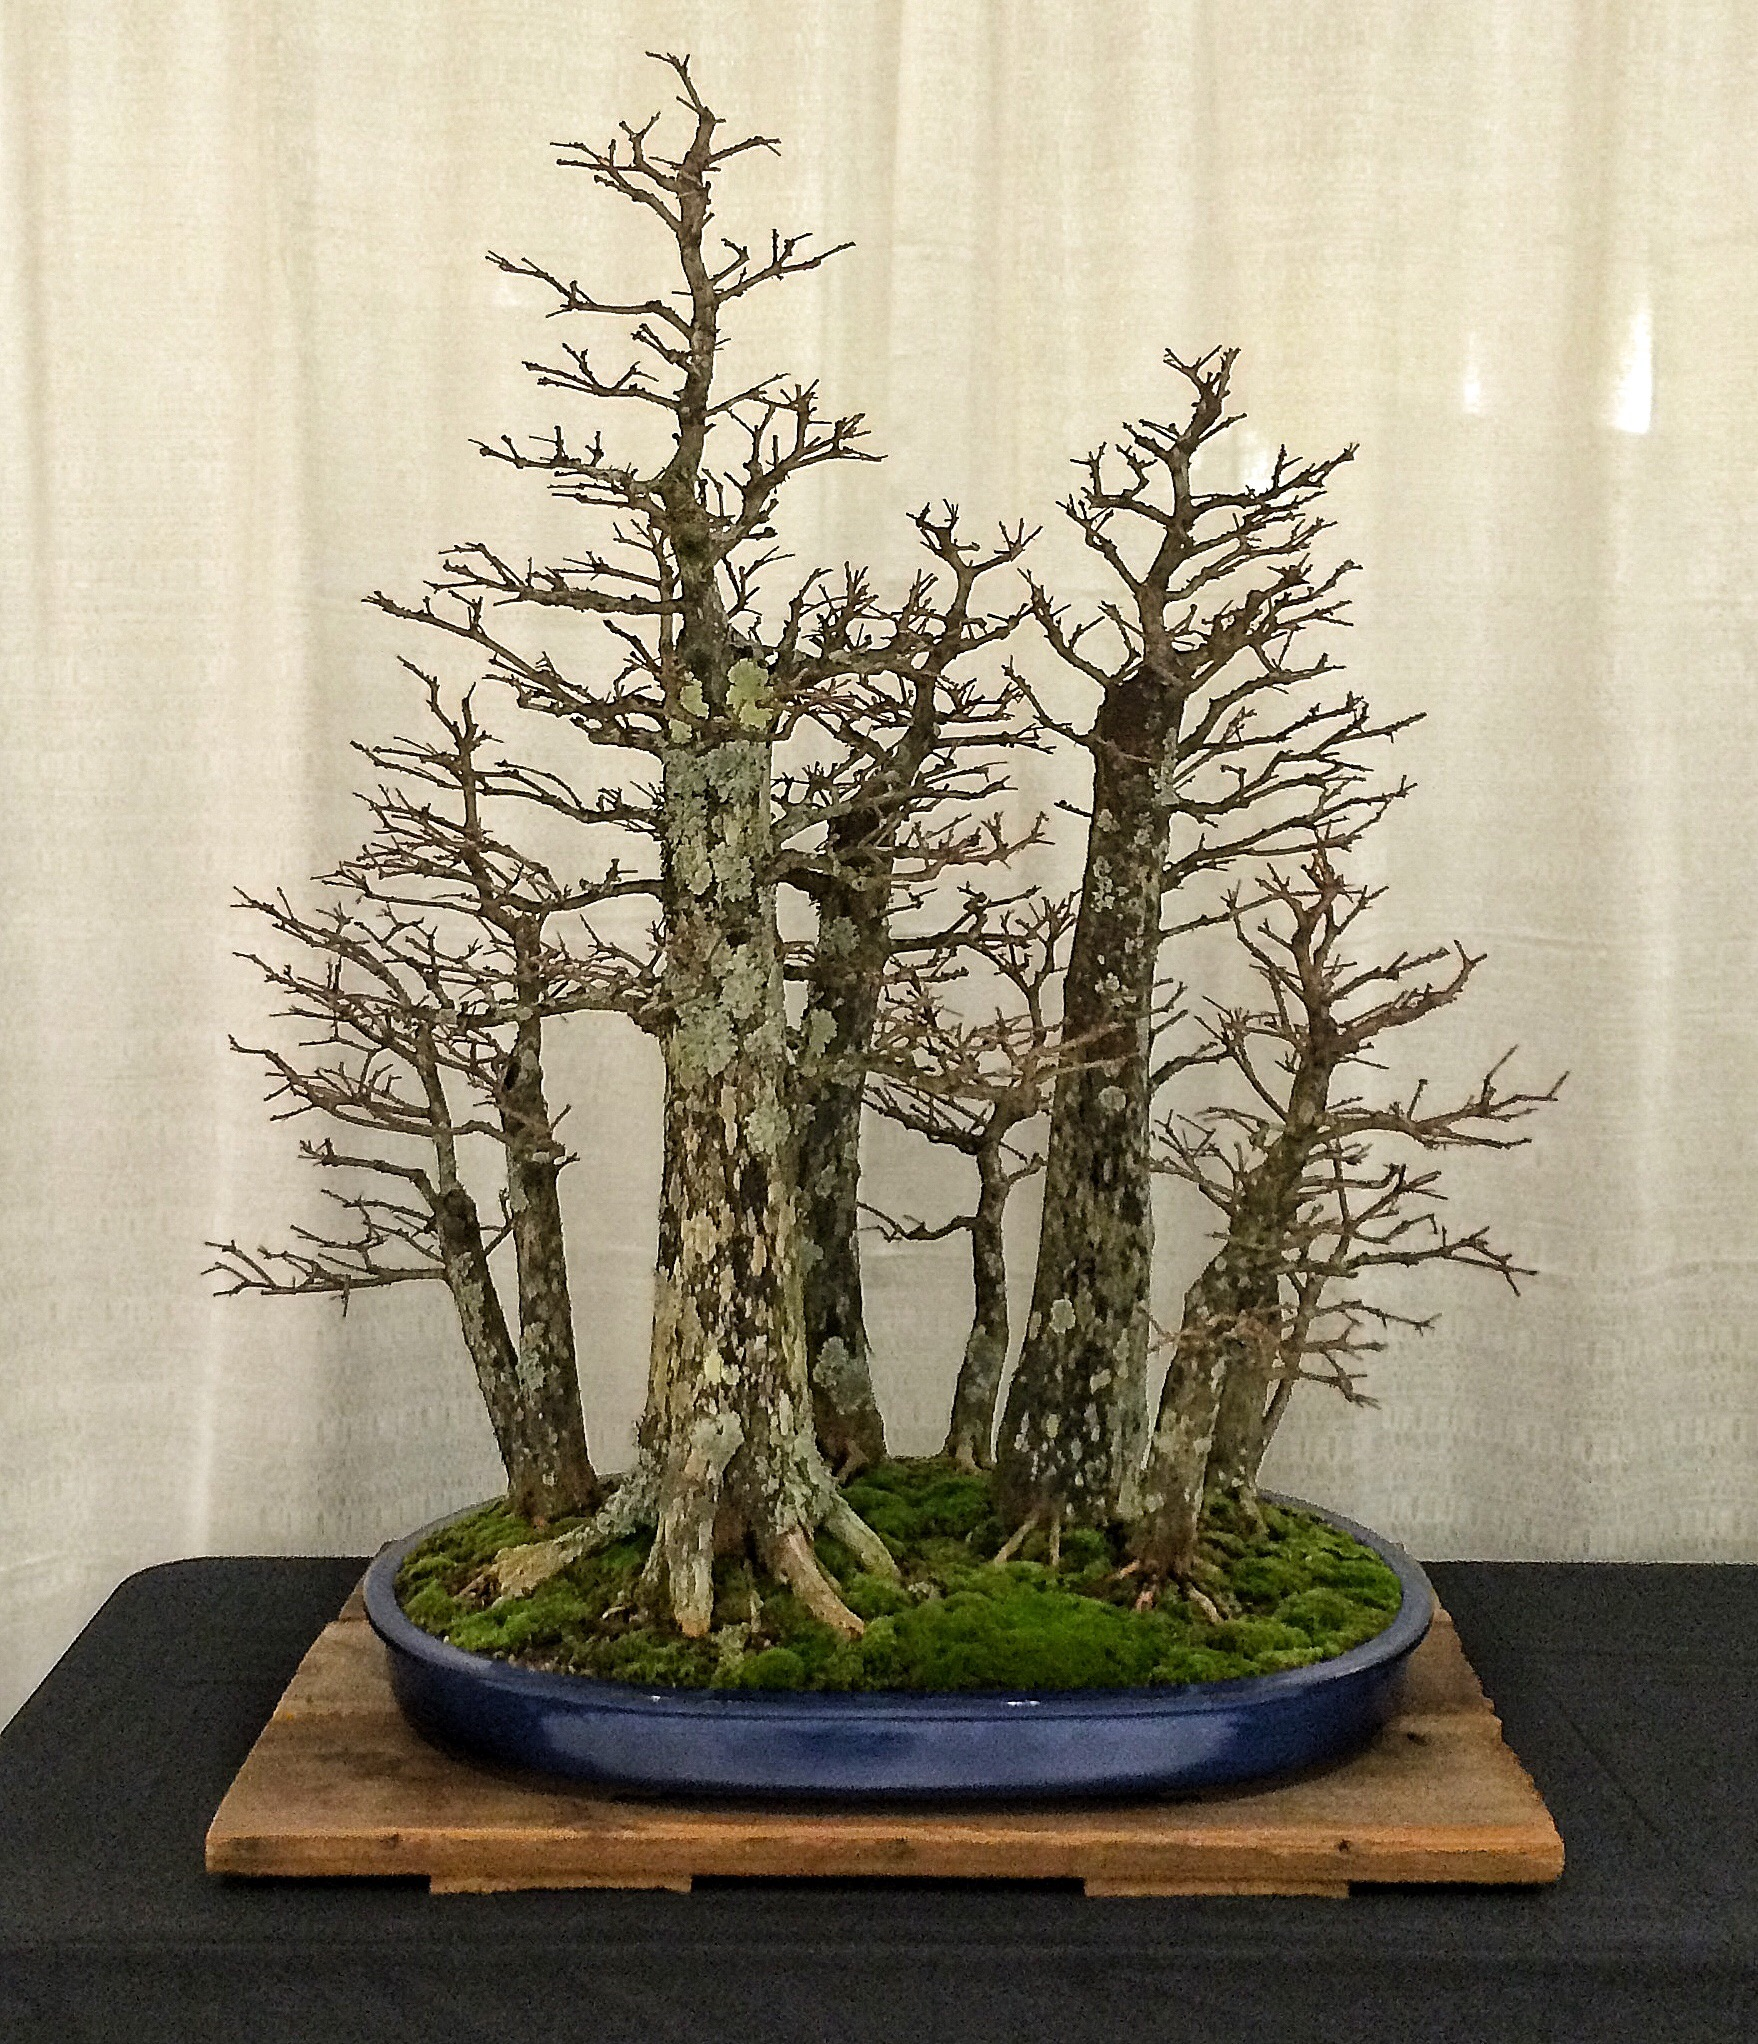 Finally The Trees Of The Winter Silhouette Bonsai Expo 2015 Adam S Art And Bonsai Blog